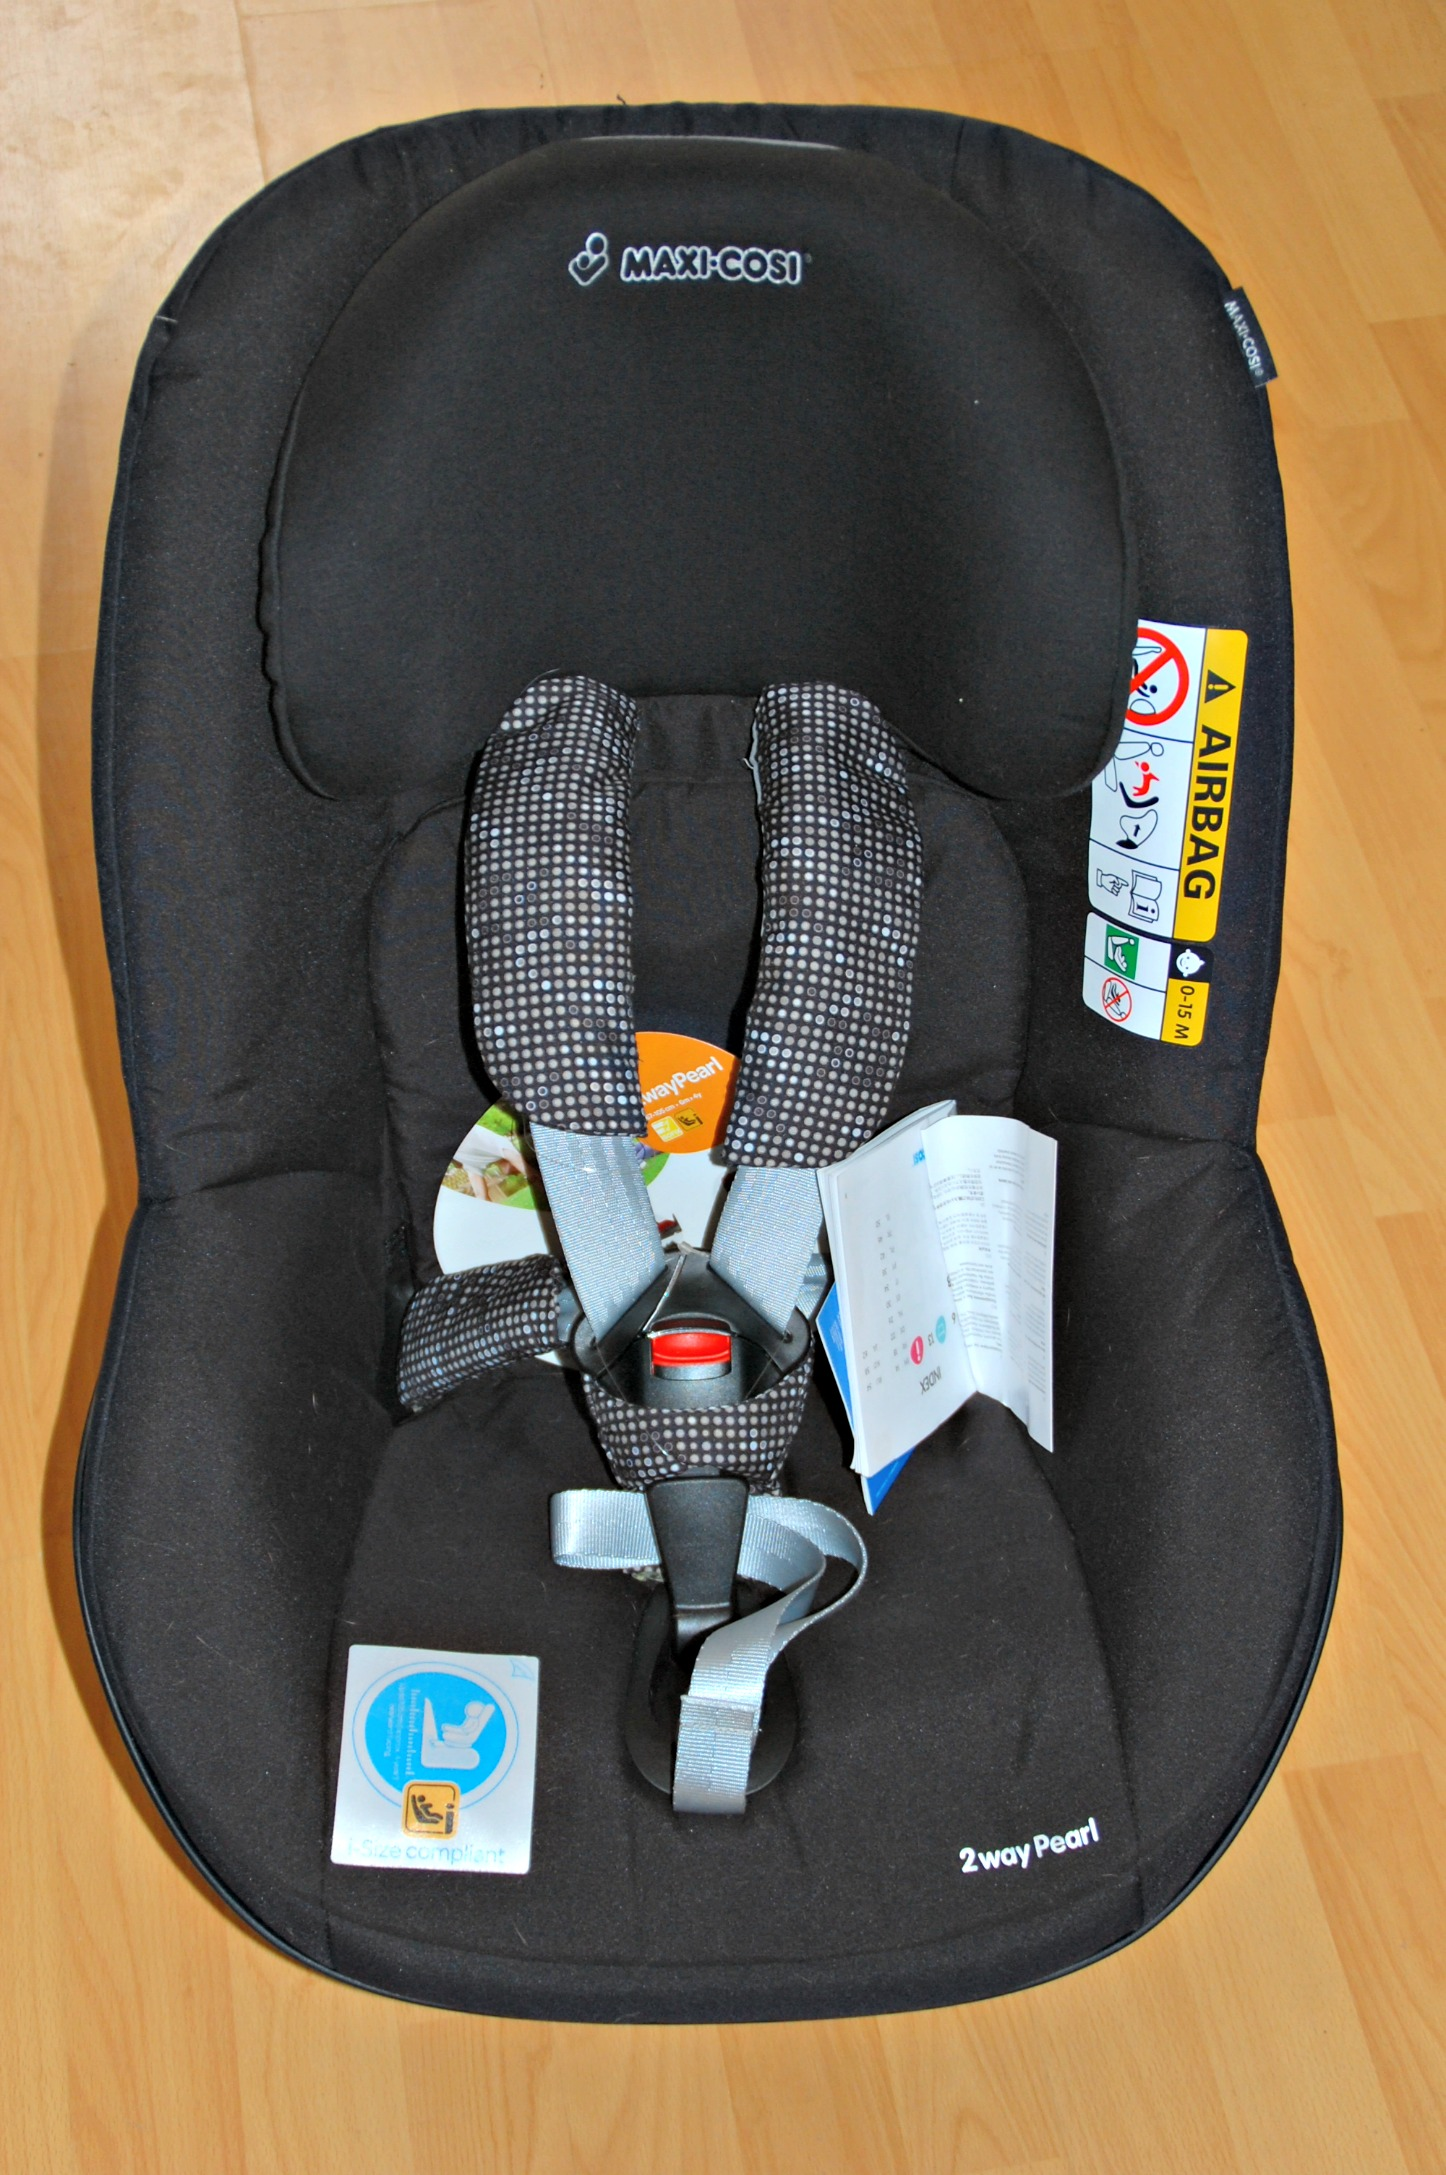 2 way pearl leder 1998 honda accord starter wiring diagram review maxi cosi toddler car seat with a 1